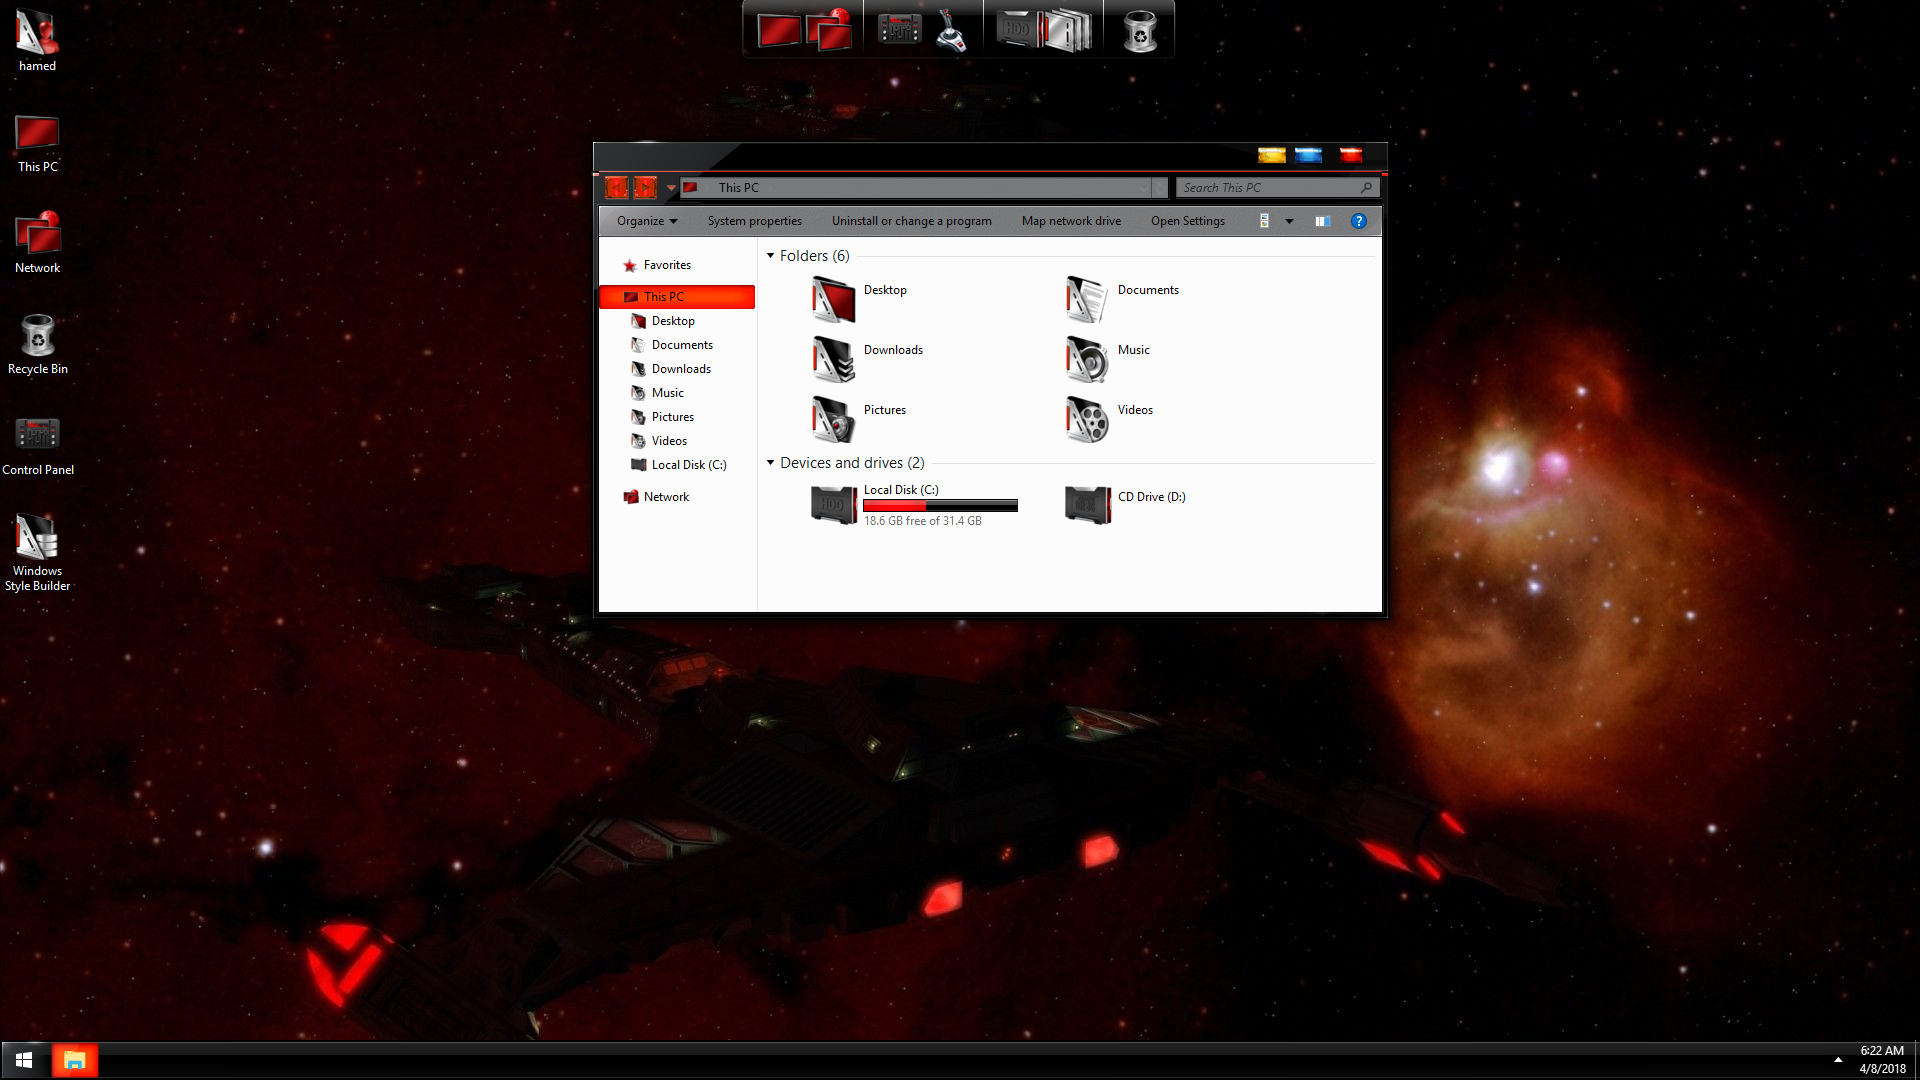 StarTrek Klingon SkinPack for Windows 7\10